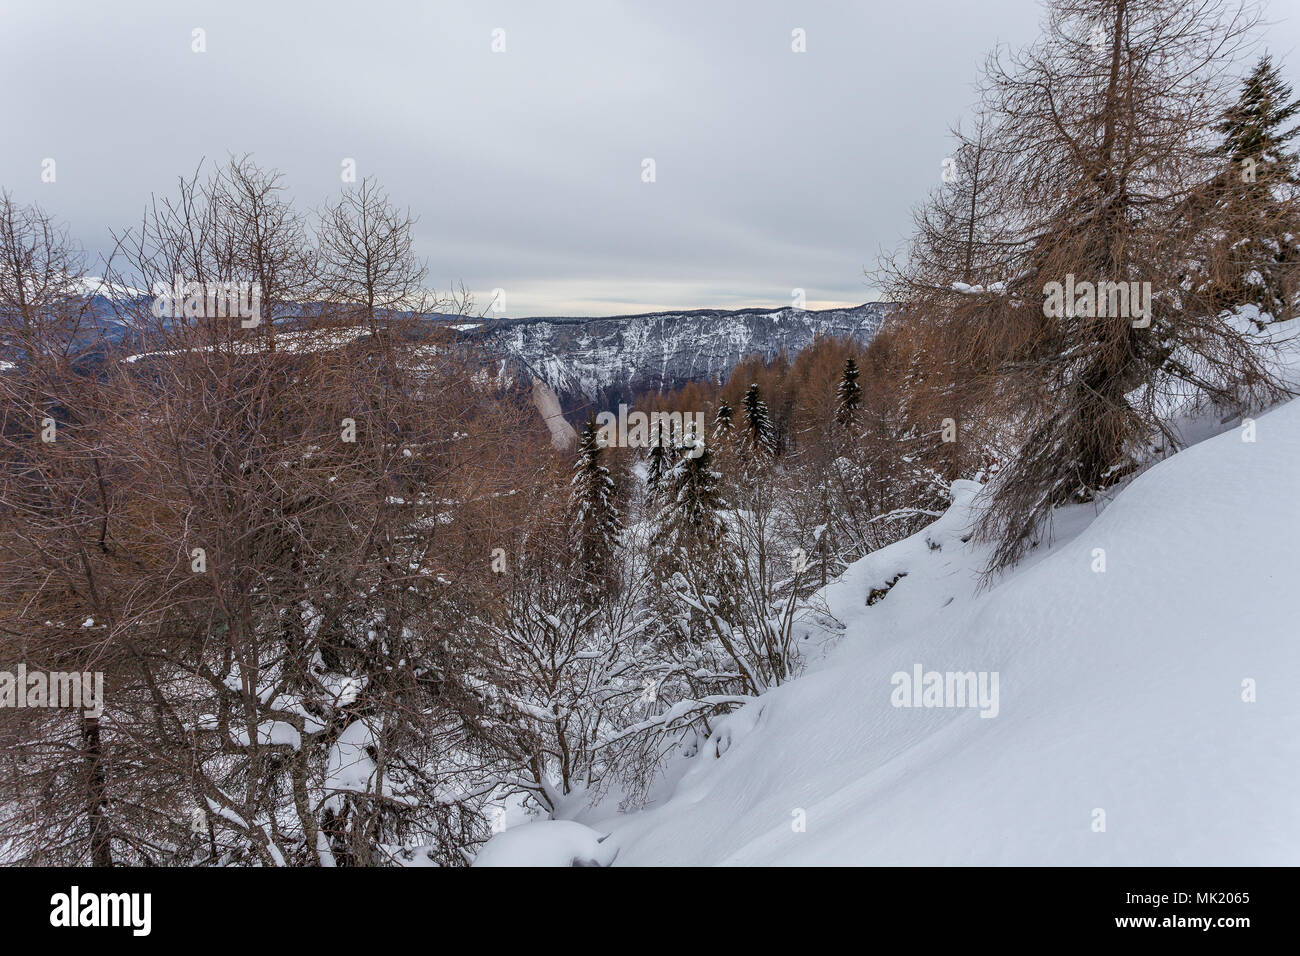 Larches and spruces on a snowy slope on a gray day, Belluno, Veneto, Italy - Stock Image